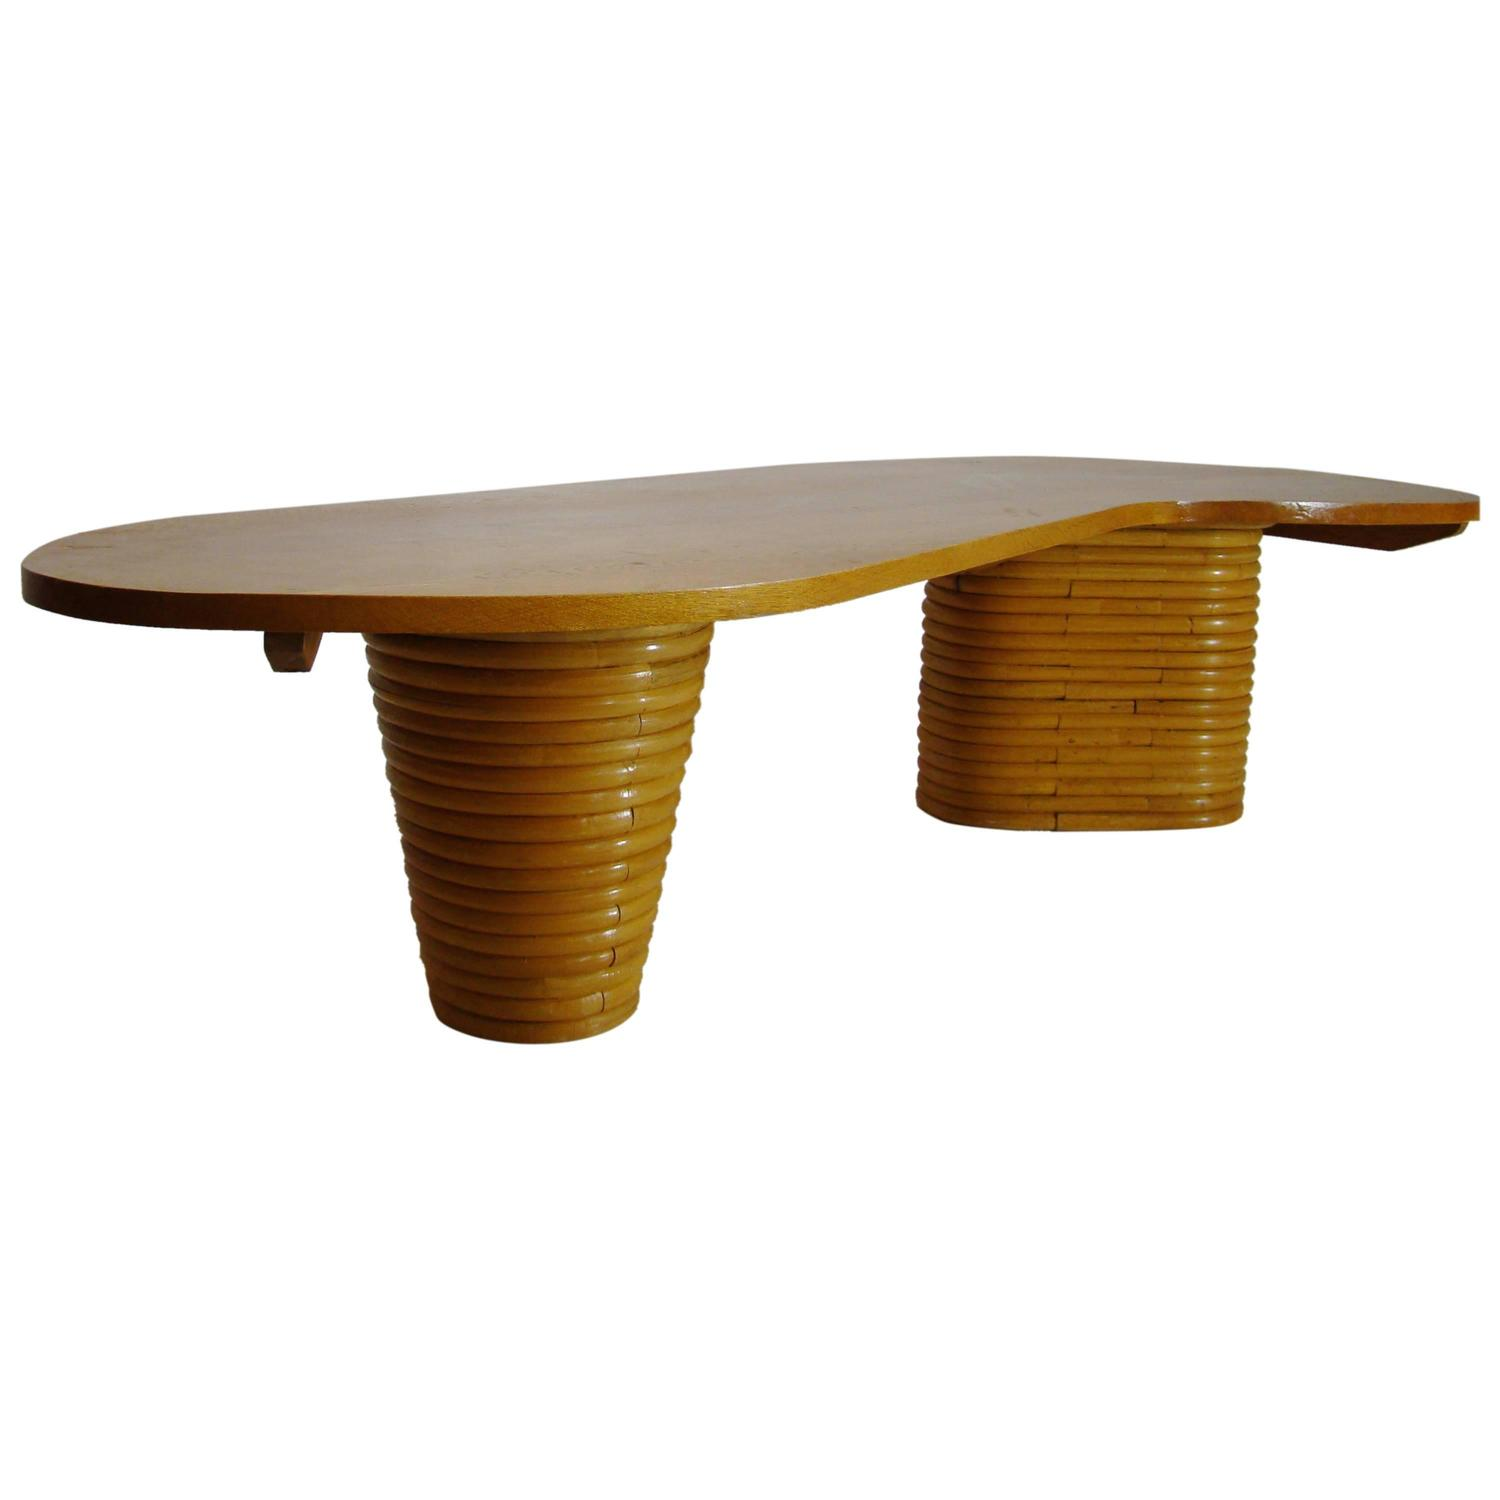 paul frankl style biomorphic rattan coffee table saturday sale at 1stdibs